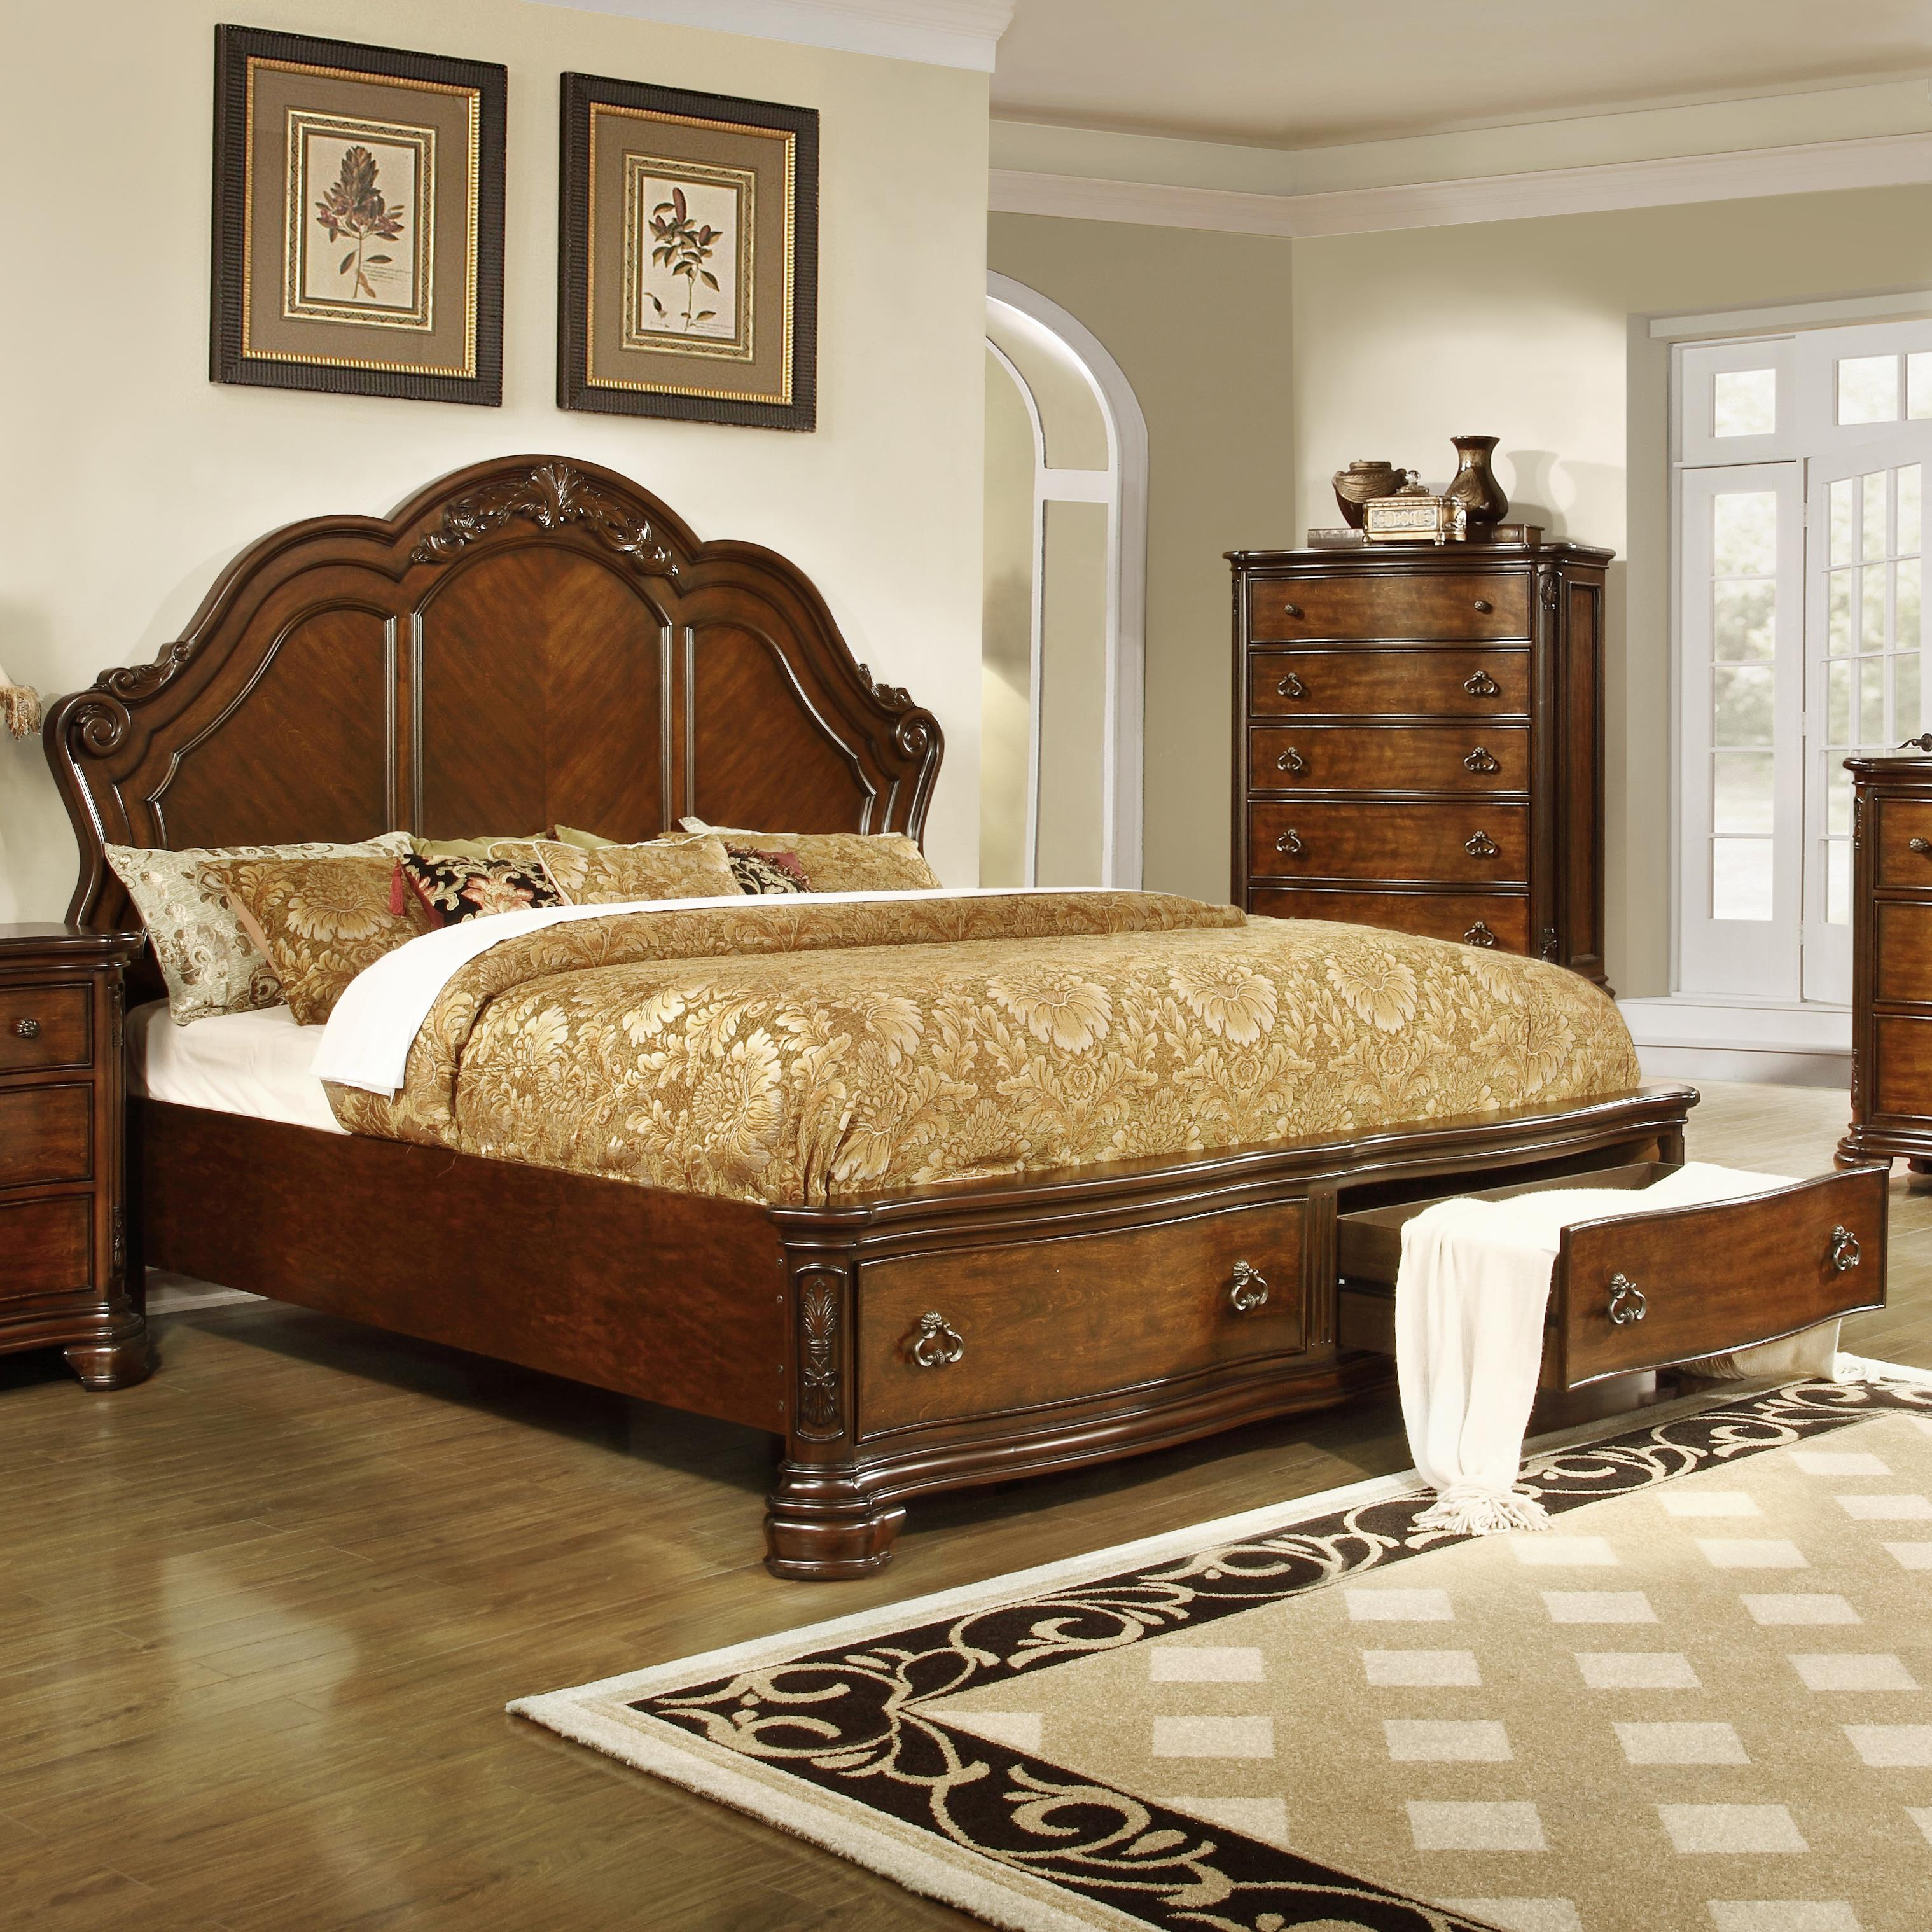 Lifestyle Tobacco King Size Panel Bed with Storage - Item Number: C5390A-GP0+GTG+BTN-XXXX